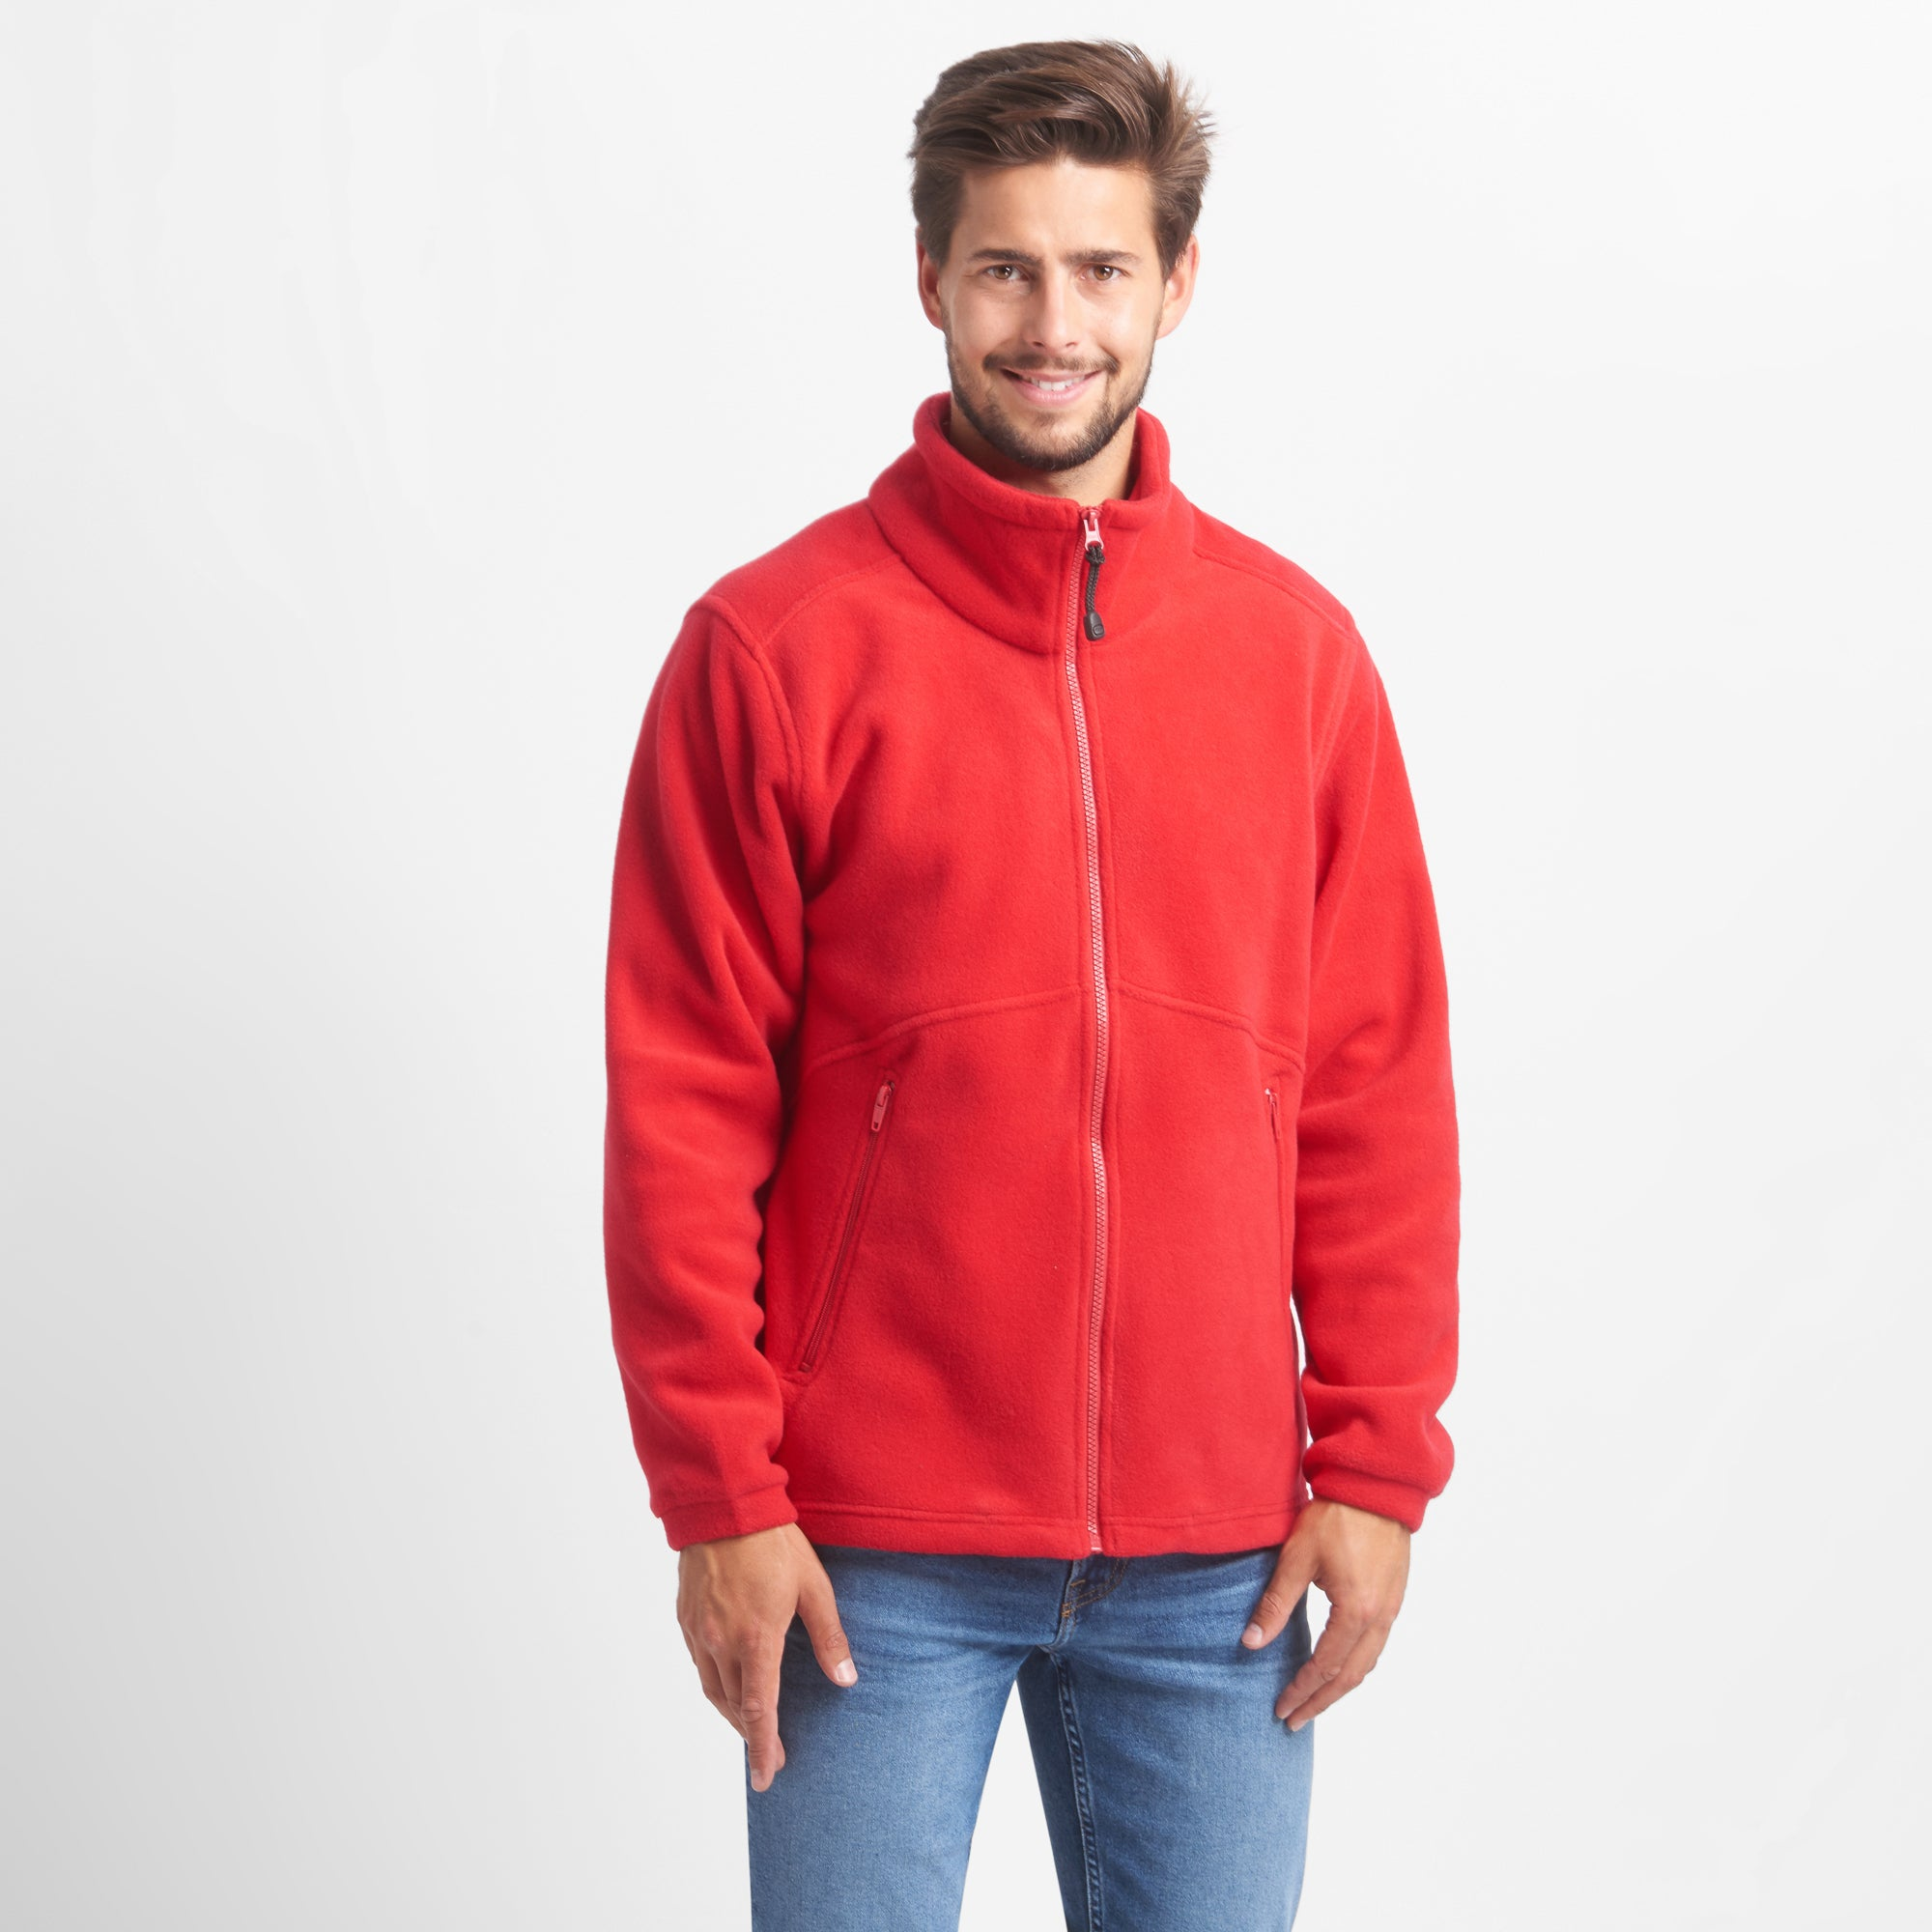 B&C BCFU703 Light-Weight Fleecejacke Unisex bei Textil One besticken